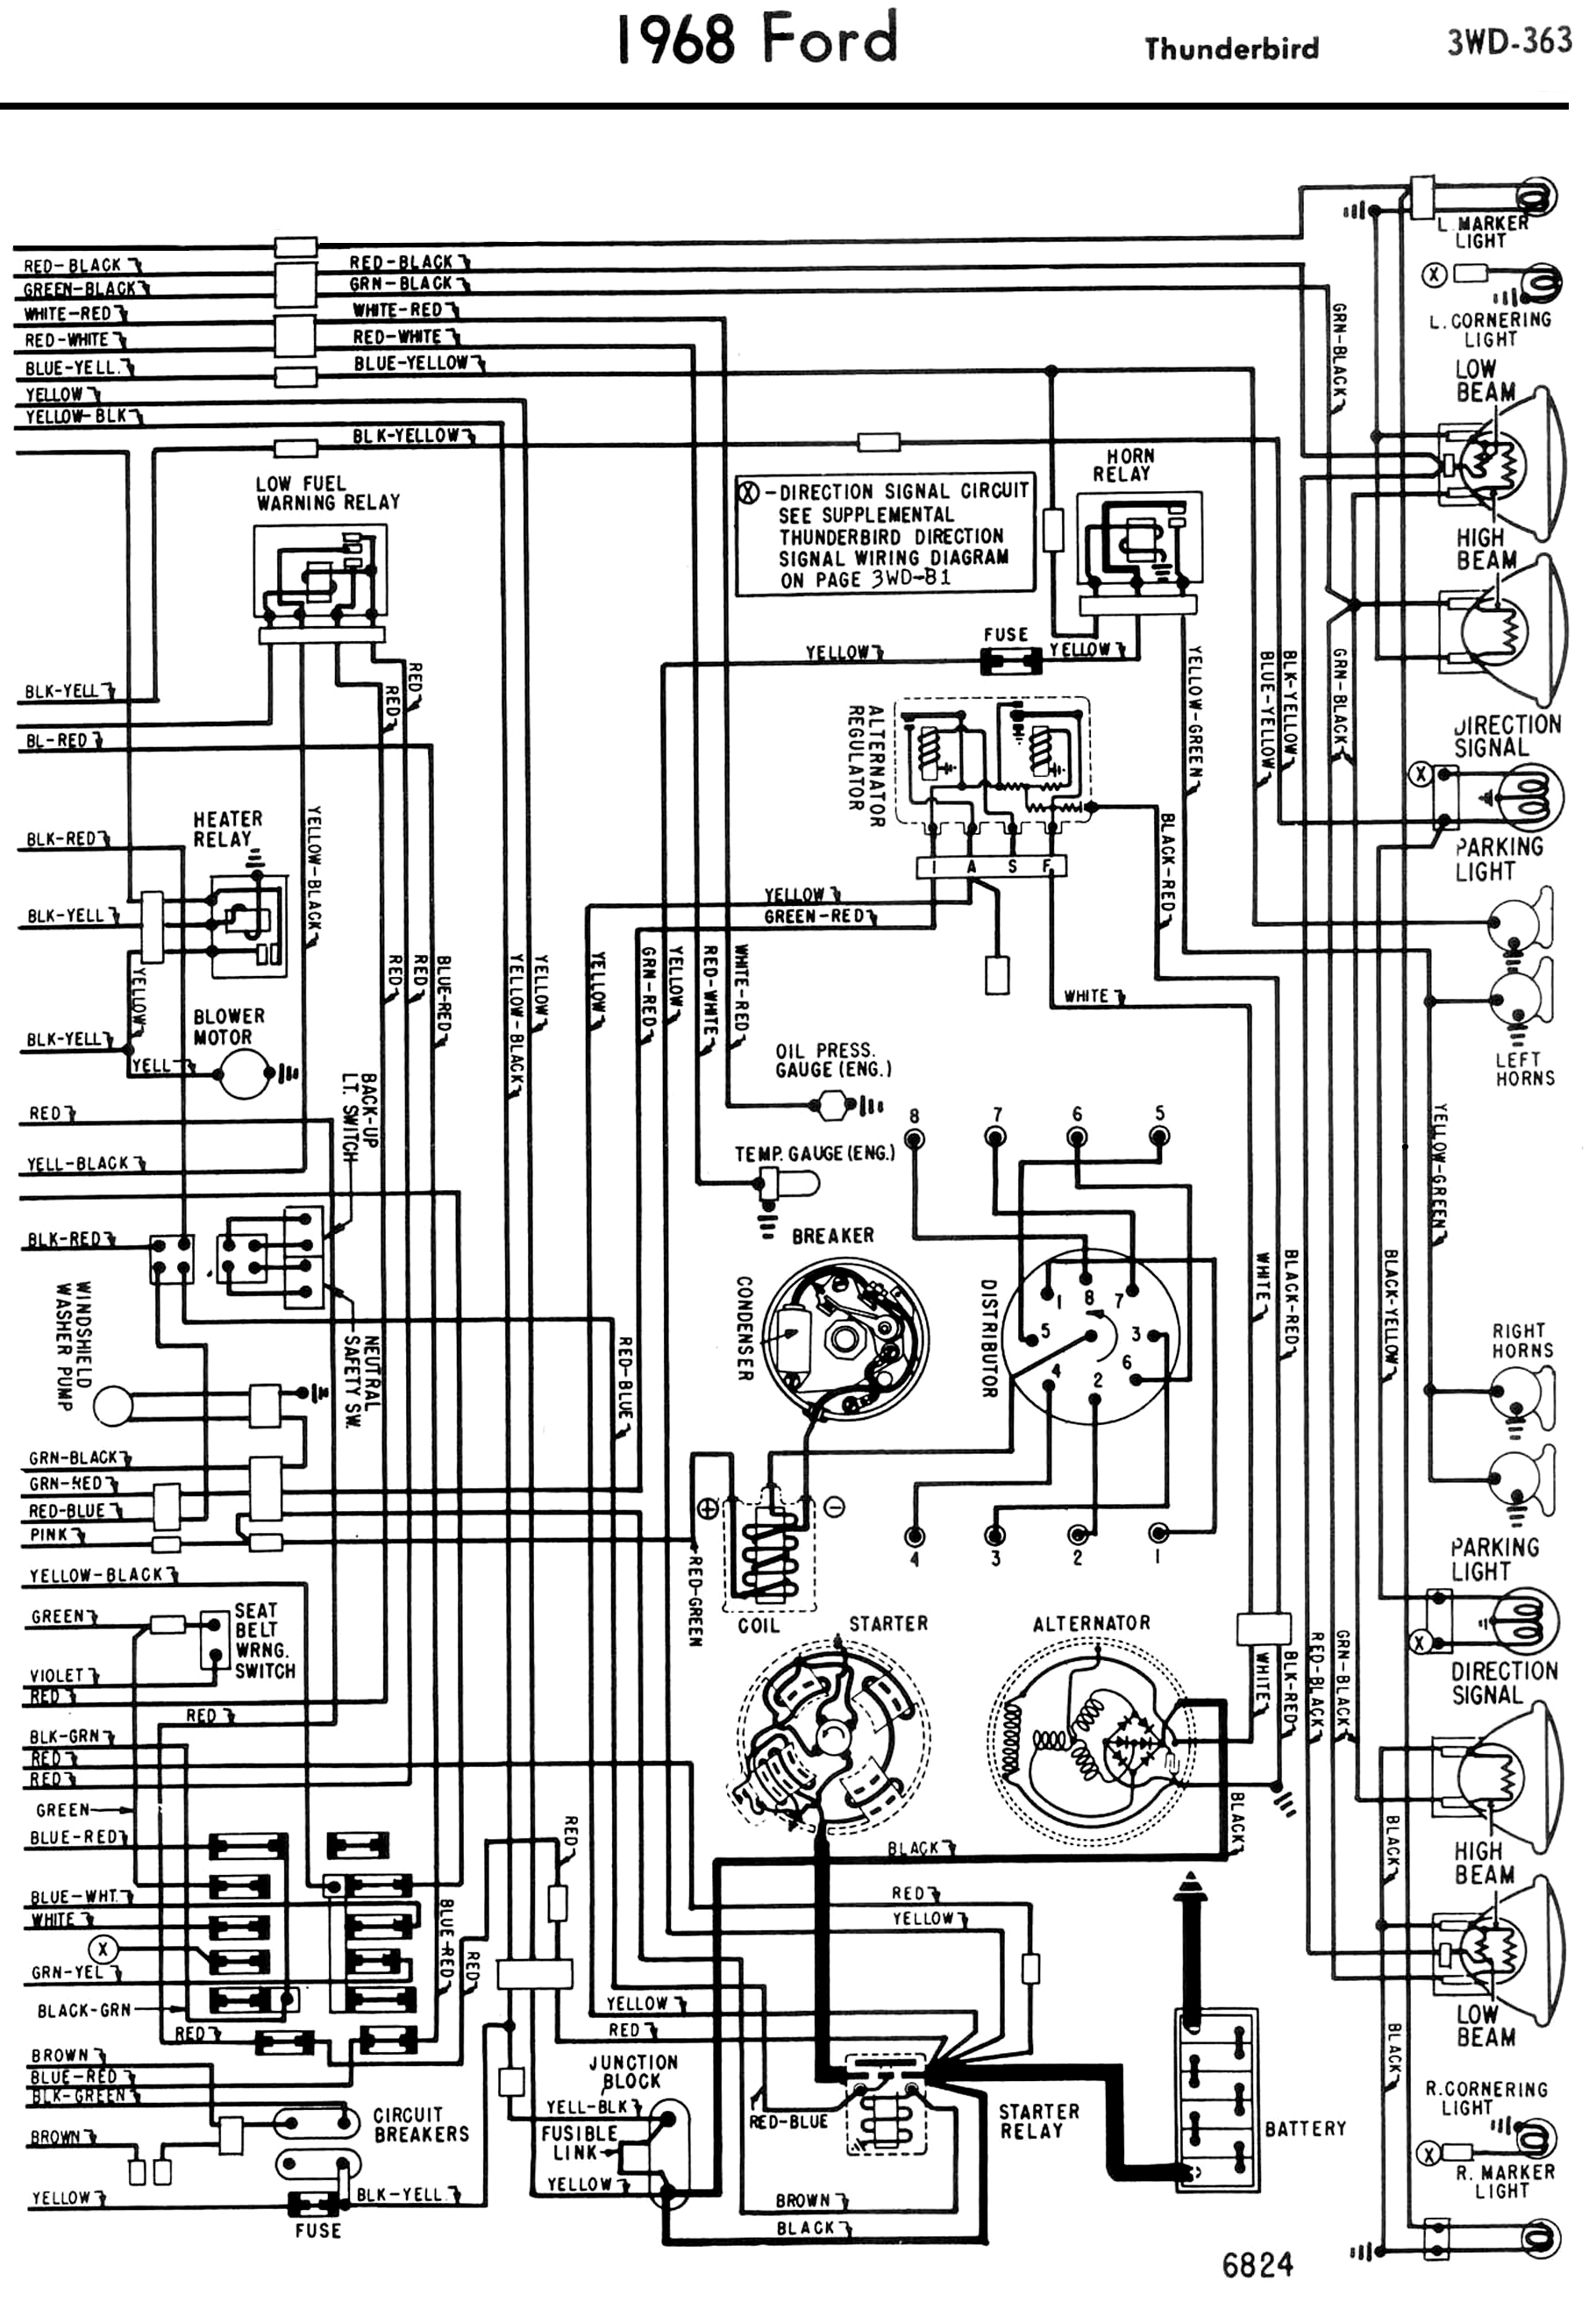 68_wiring_diagram RH 1958 68 ford electrical schematics 1965 thunderbird alternator wiring diagram at crackthecode.co